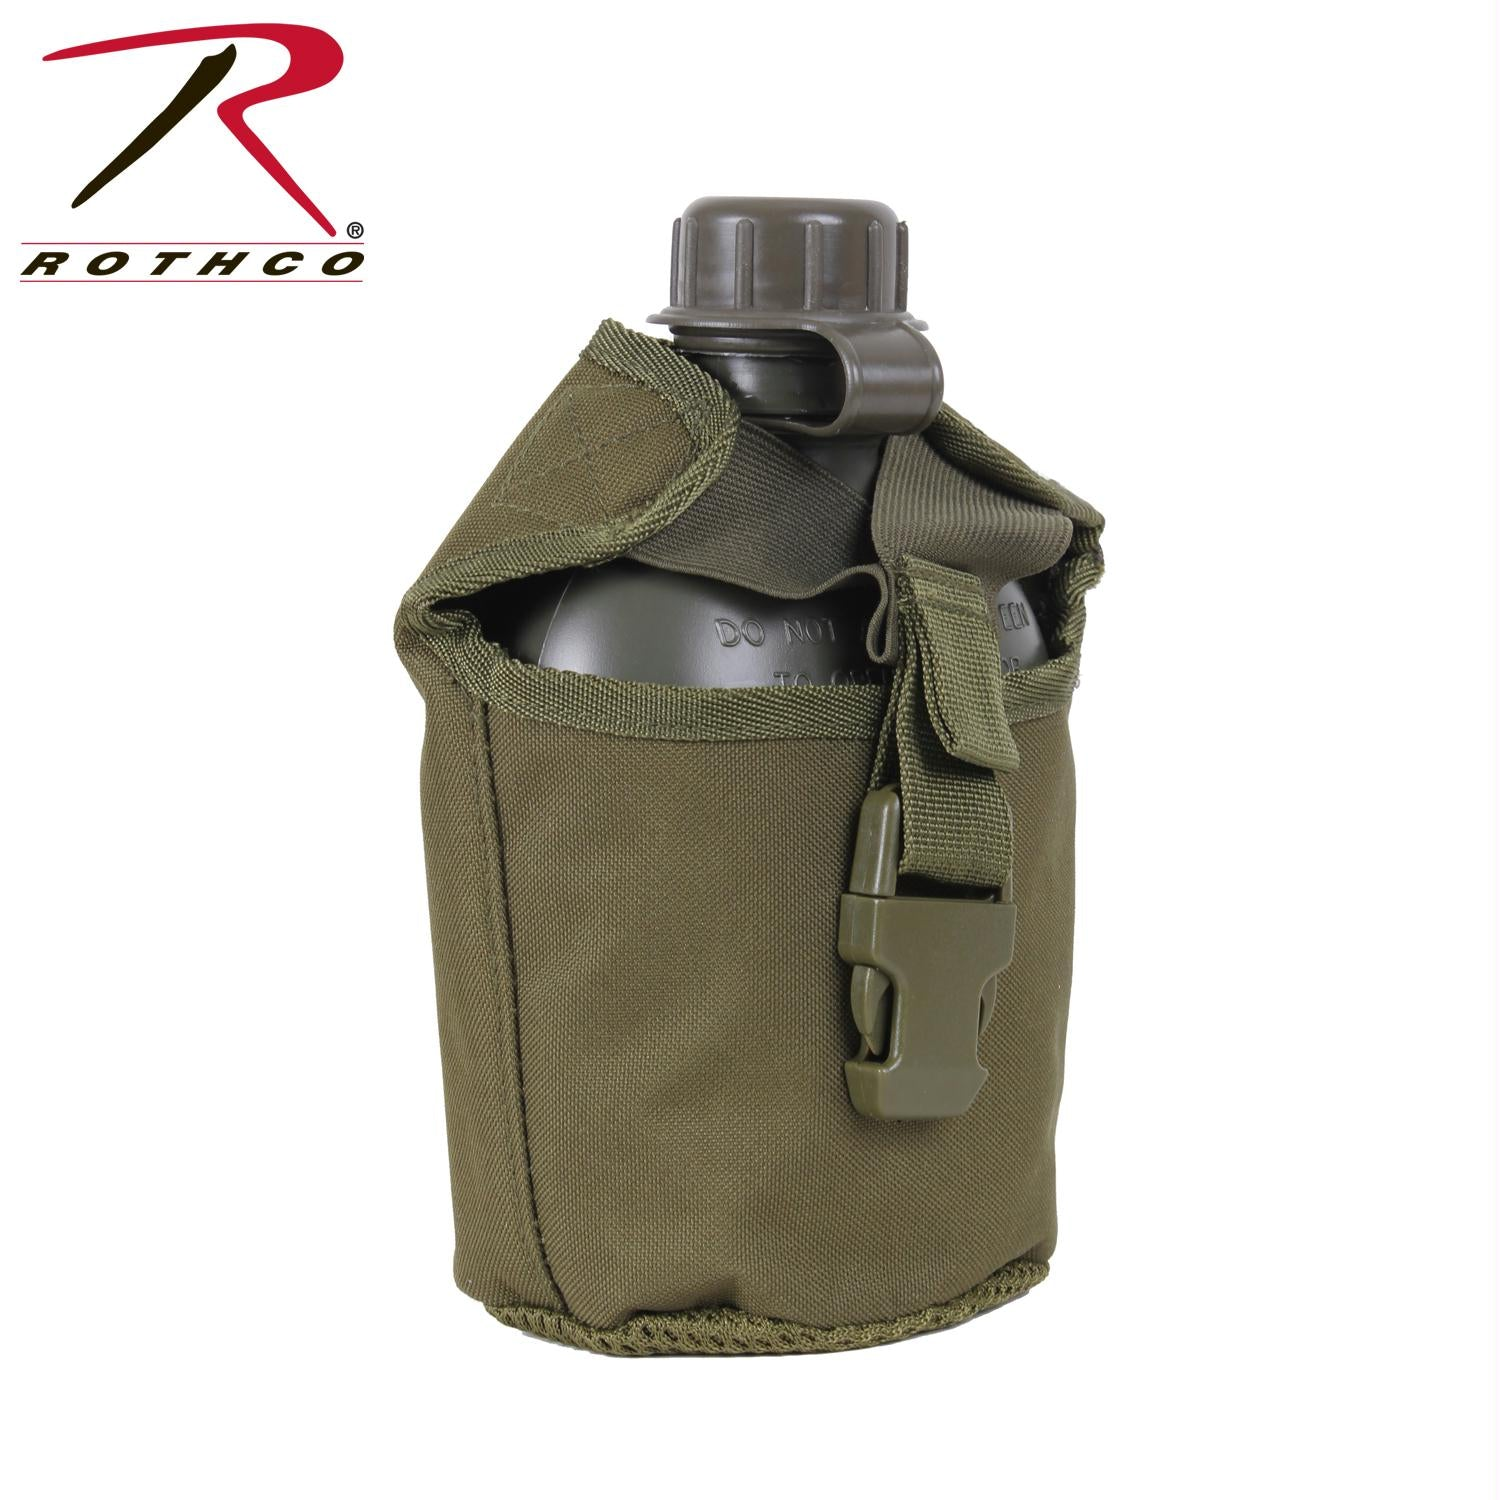 Rothco MOLLE Compatible 1 Quart Canteen Cover - Olive Drab